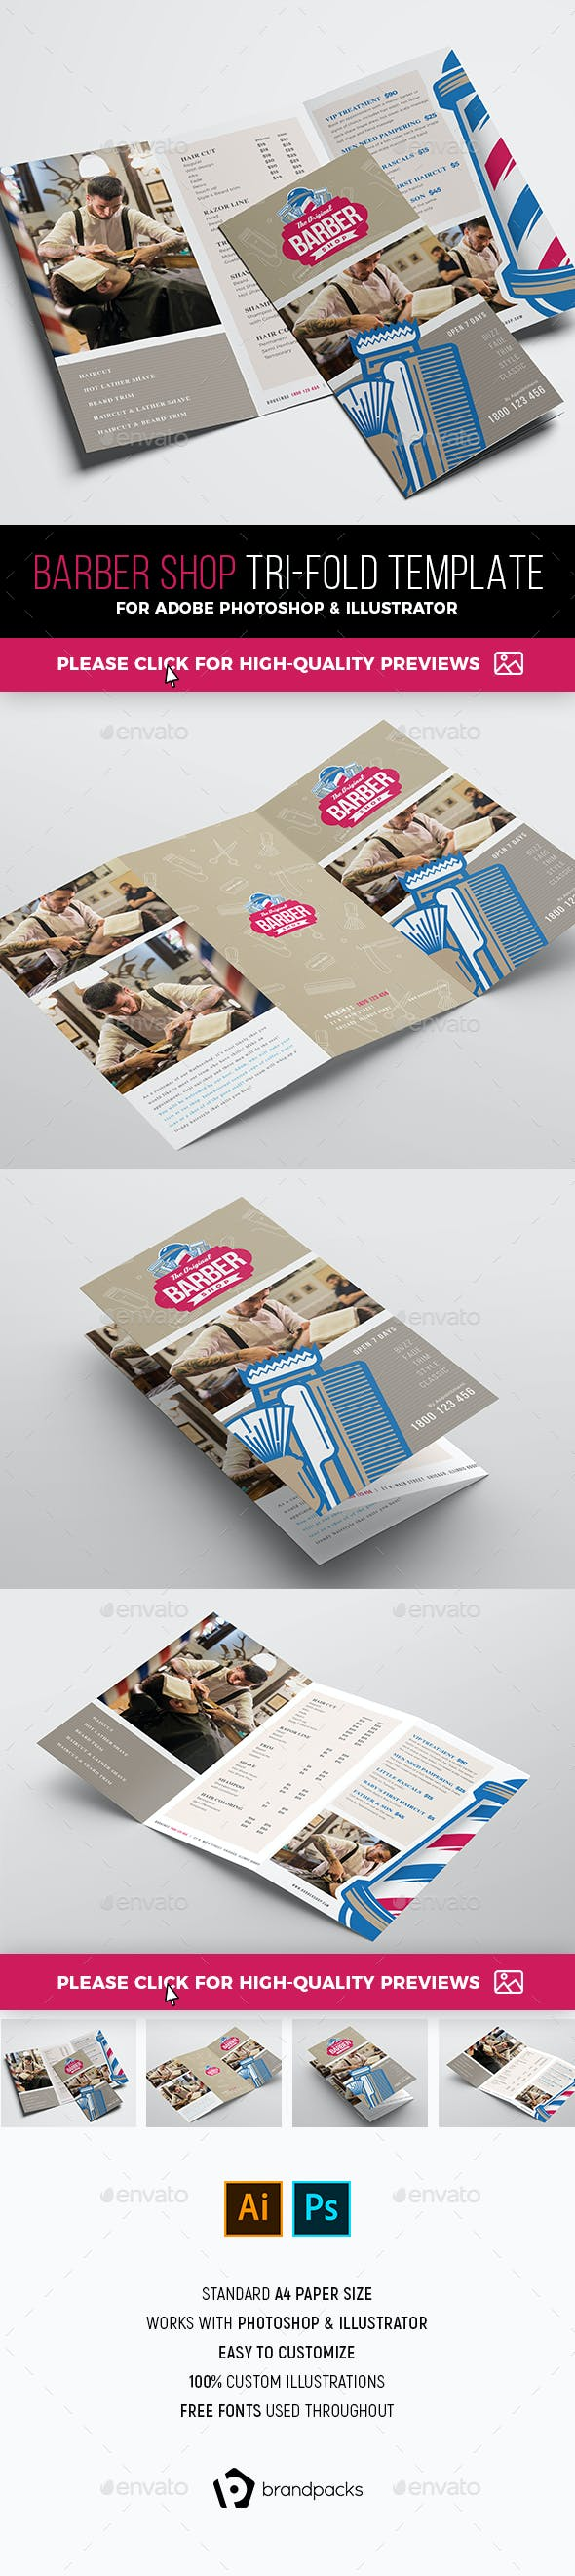 barber shop tri fold brochure template by brandpacks graphicriver